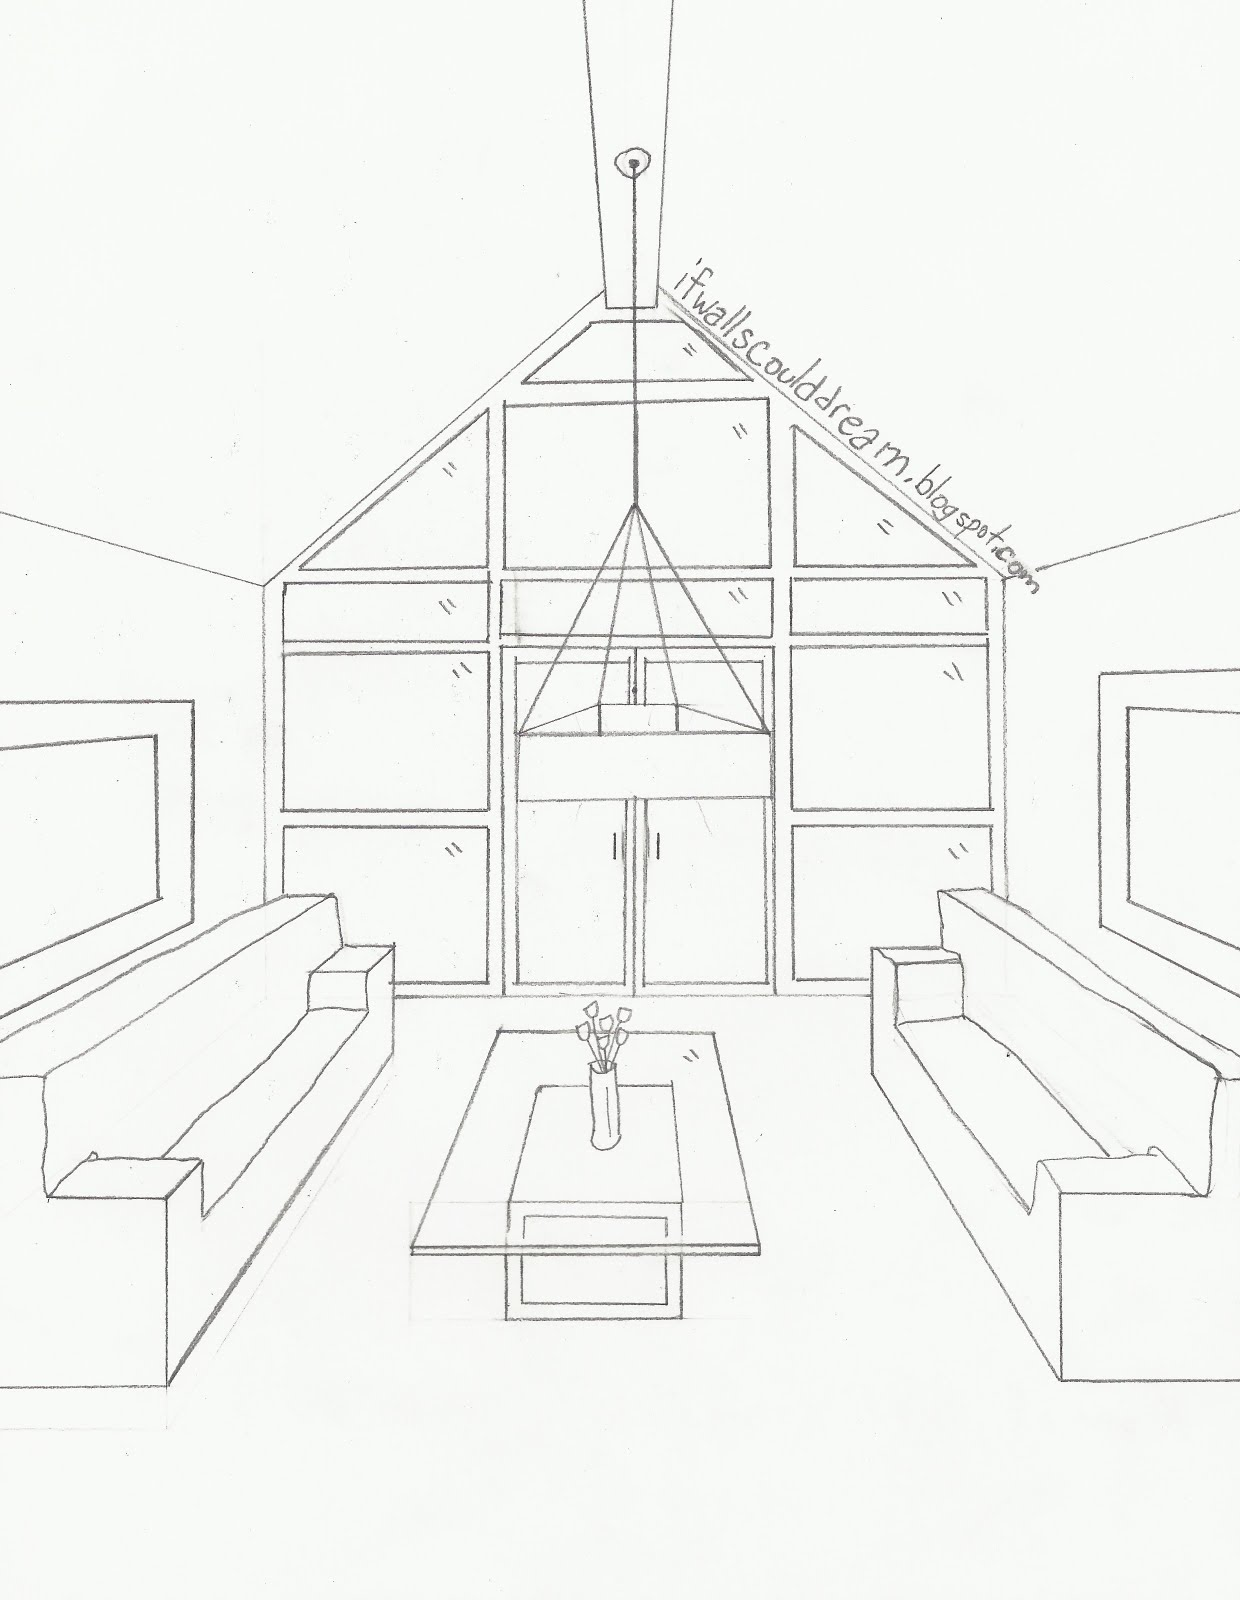 Inside House Drawing at GetDrawings.com | Free for personal use ...